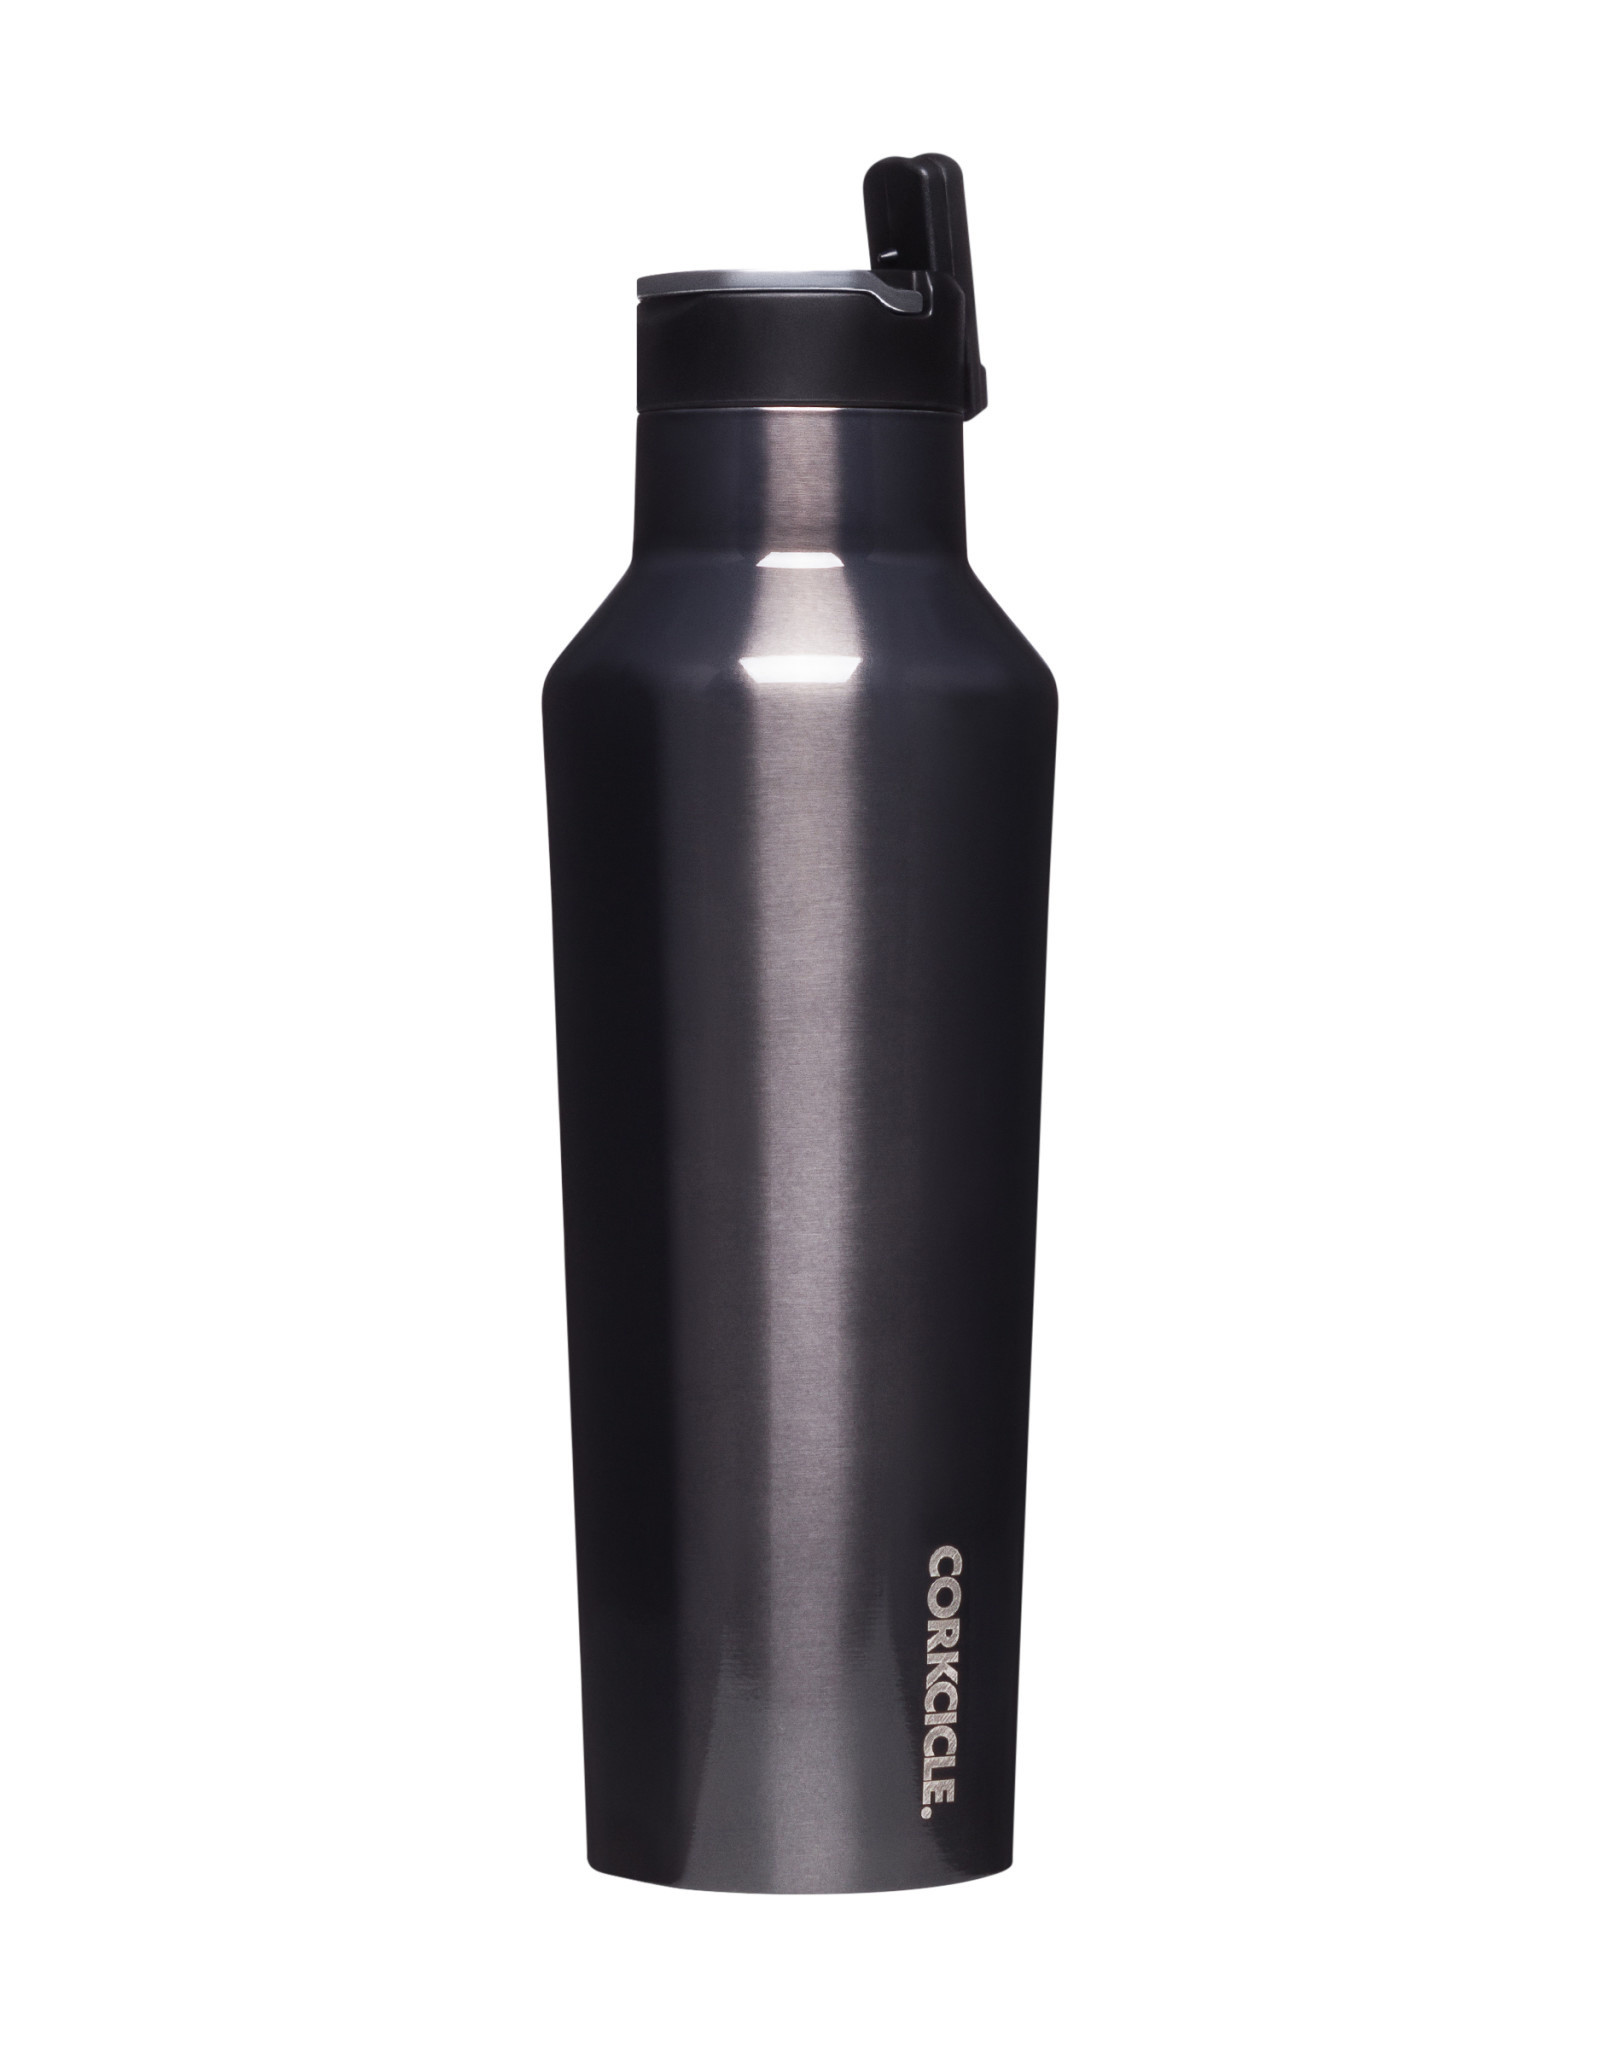 Corkcicle Corkcicle 20oz Sport Canteen